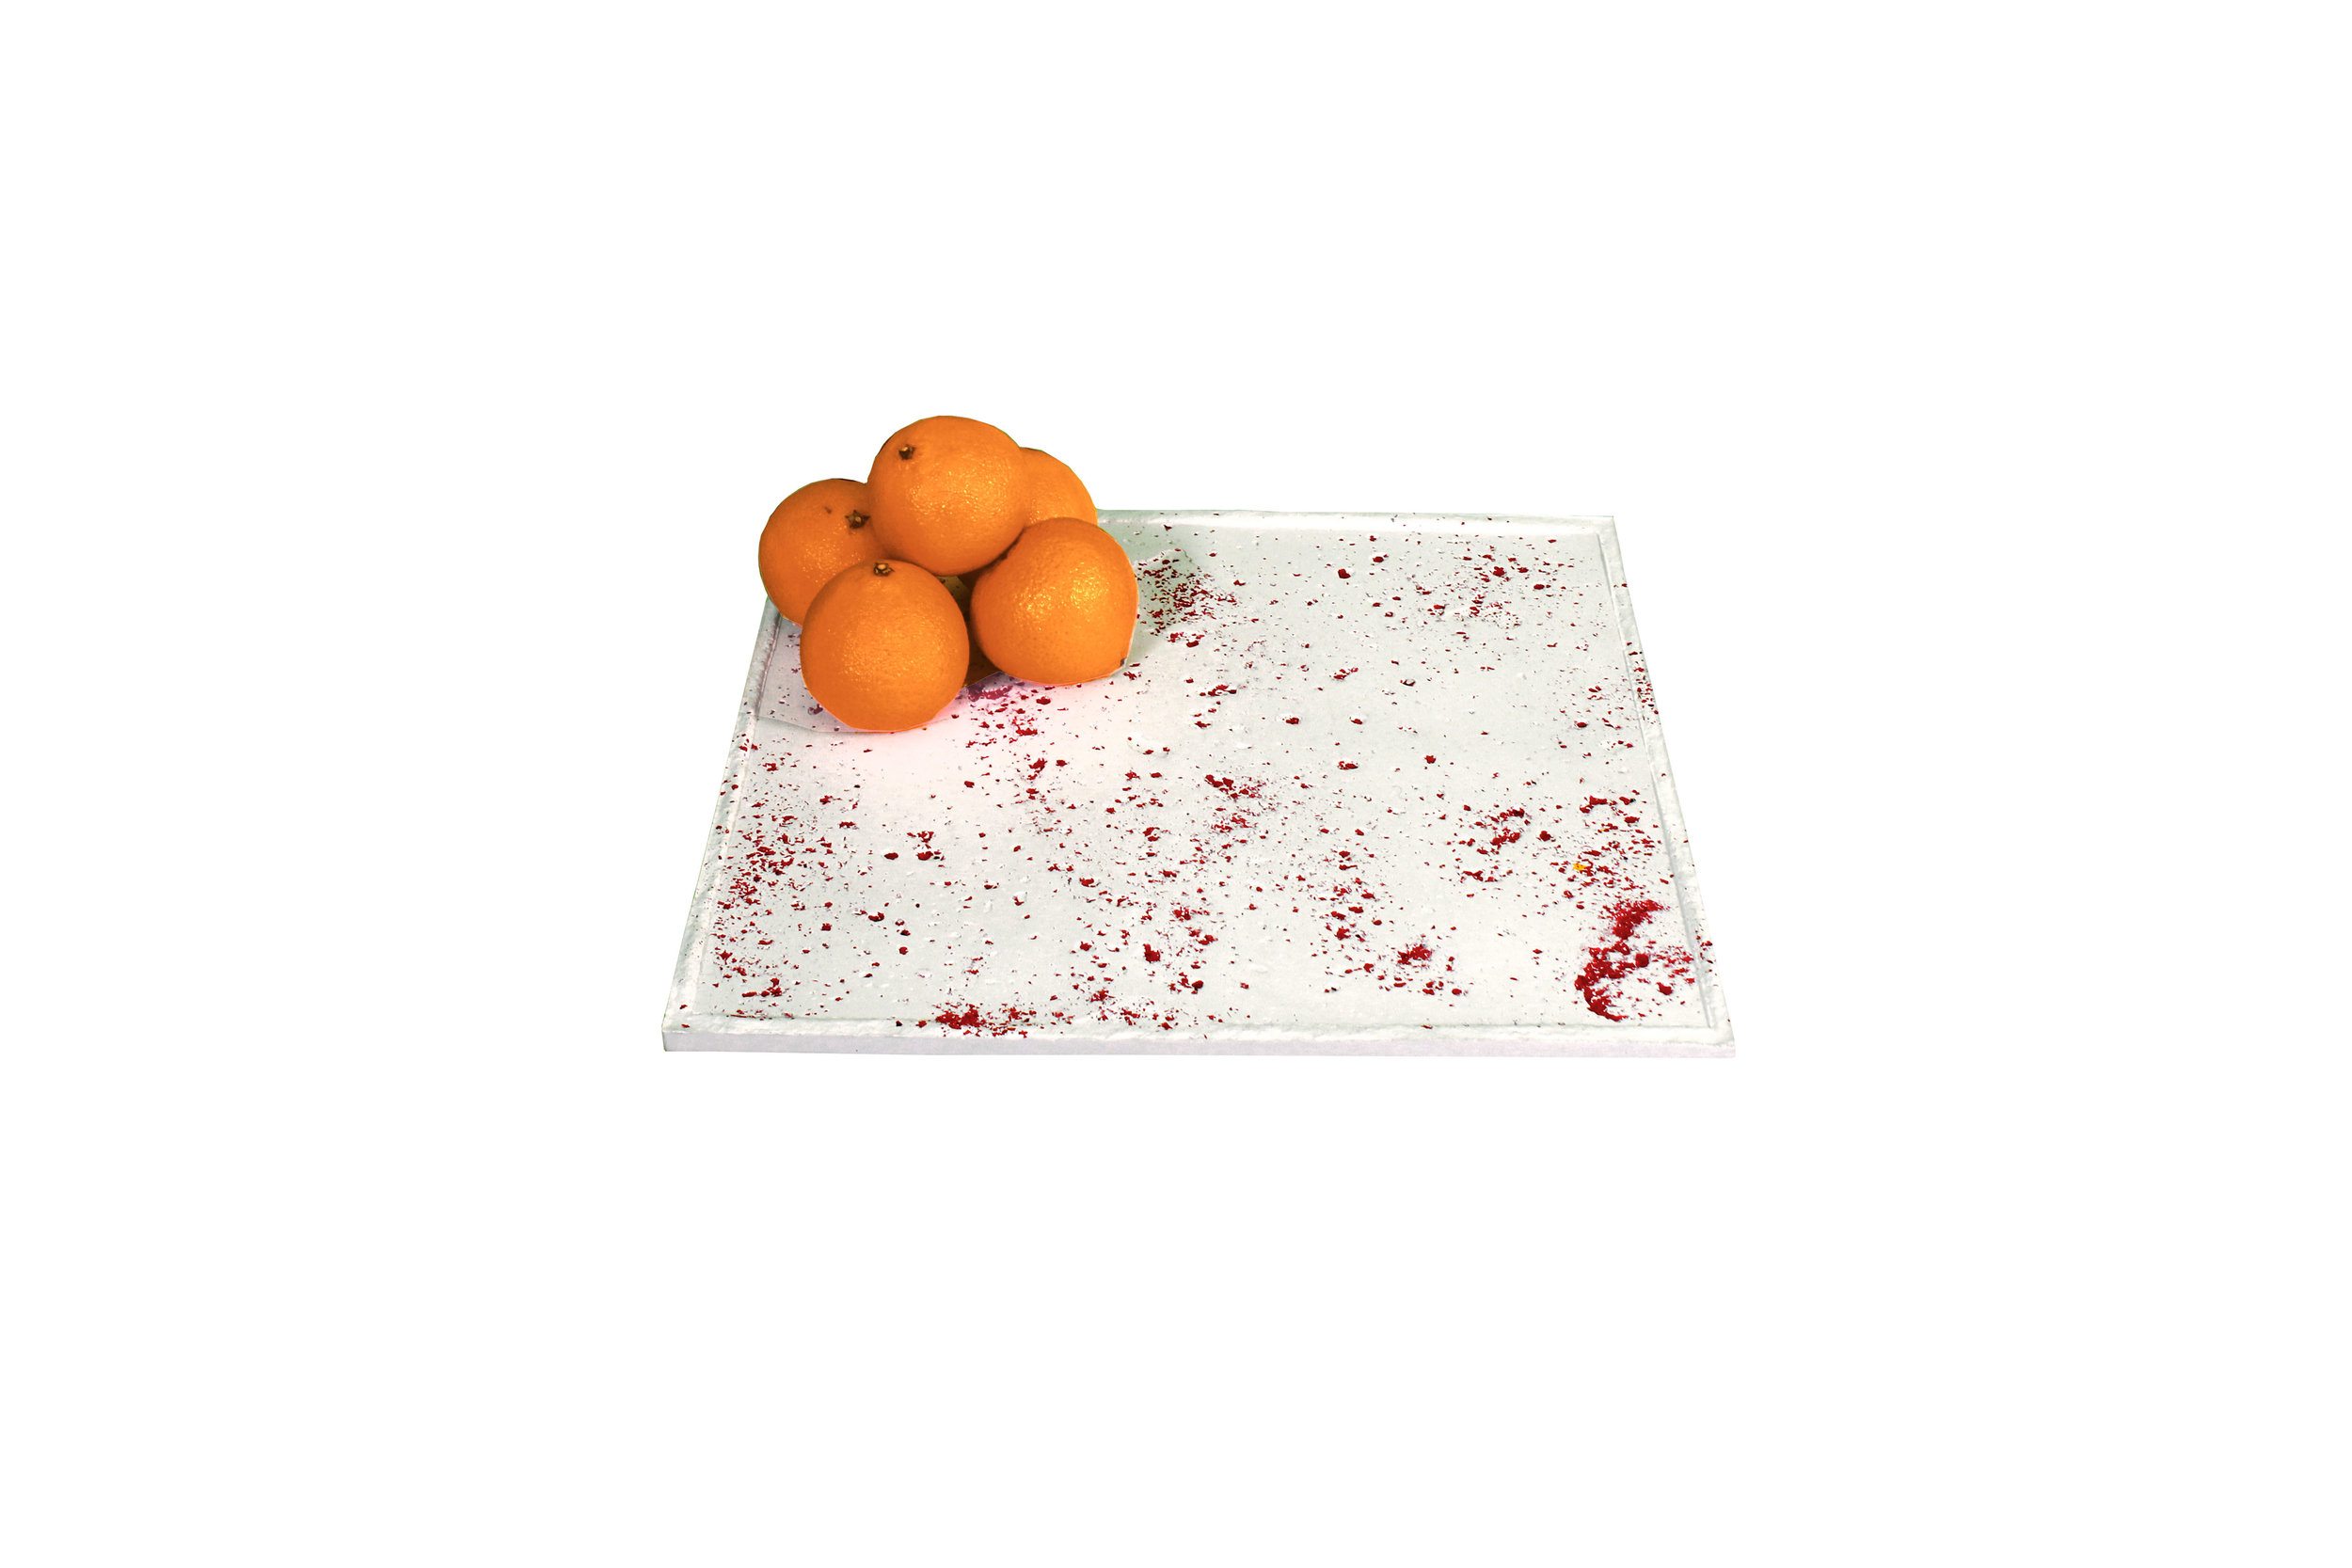 Ochre concrete tray with oranges